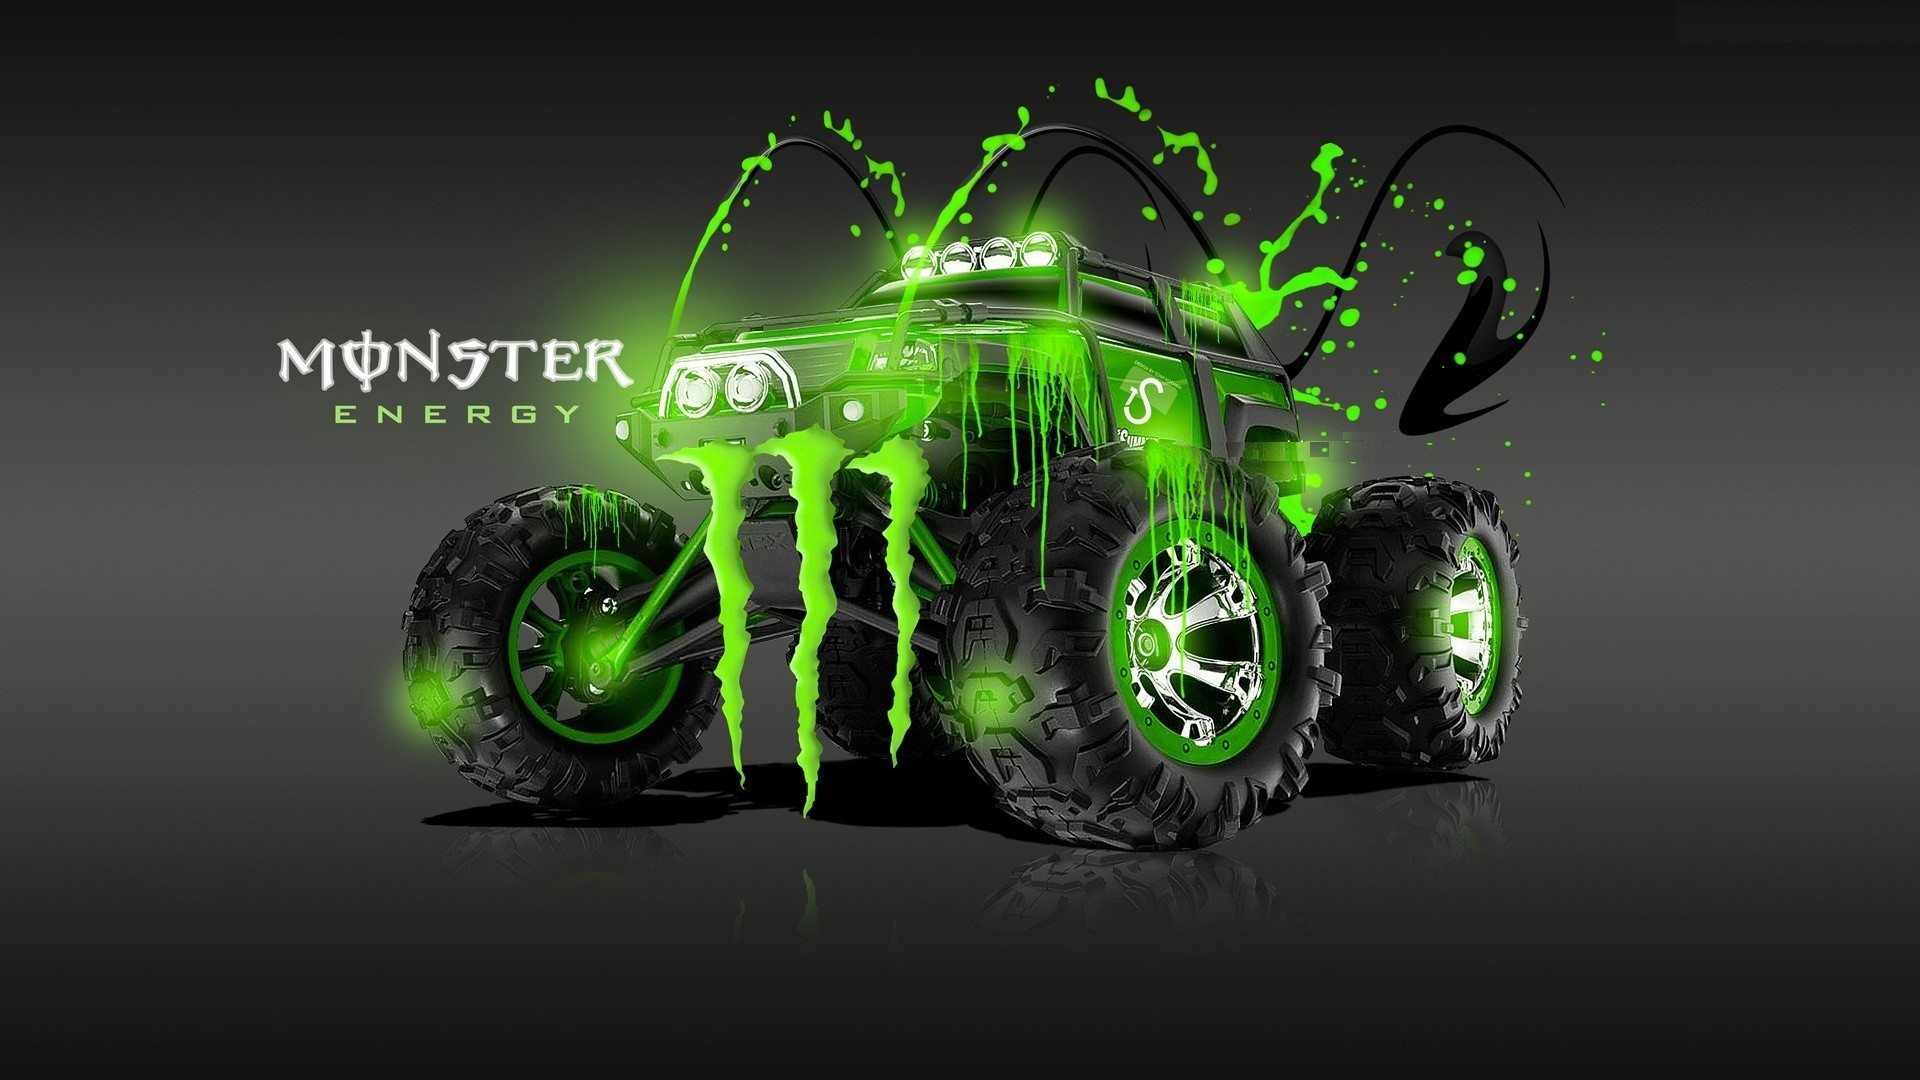 Monster Energy Wallpaper Download Free Cool Hd Wallpapers For